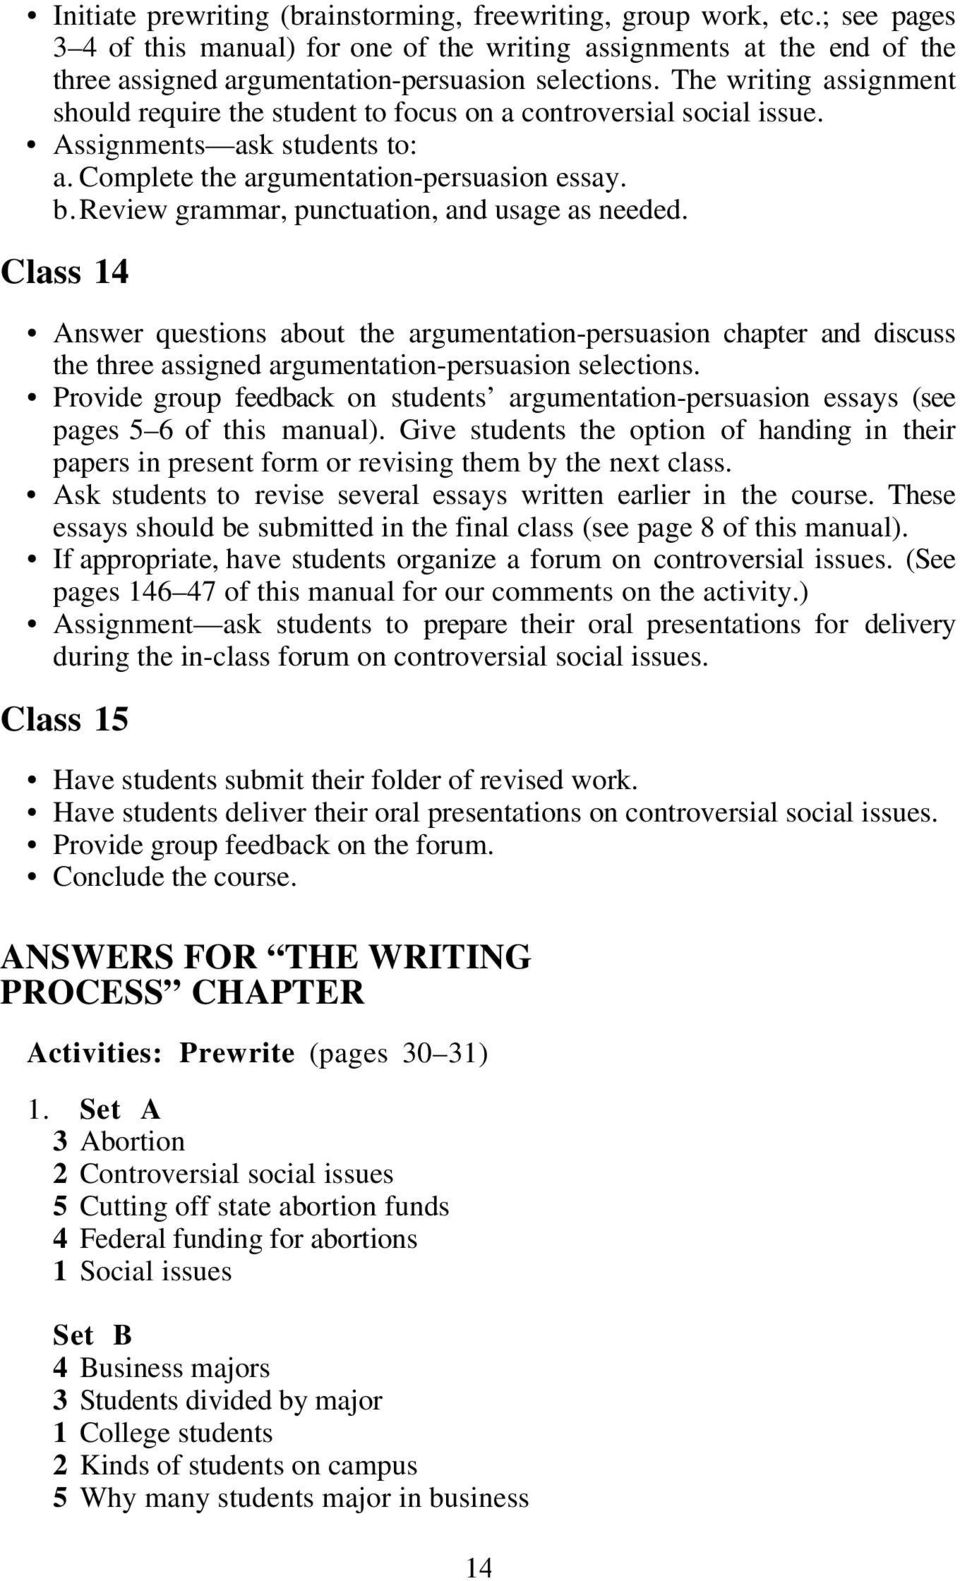 Analytical Essay Thesis Essay Samples On Social Issues Essay Paper On Family Relationships Essay  Paper On Whaling Essay Synthesis Essay Ideas also Persuasive Essay Example High School Essay On Social Issue  Essay Writing For Money Professional  My Hobby English Essay